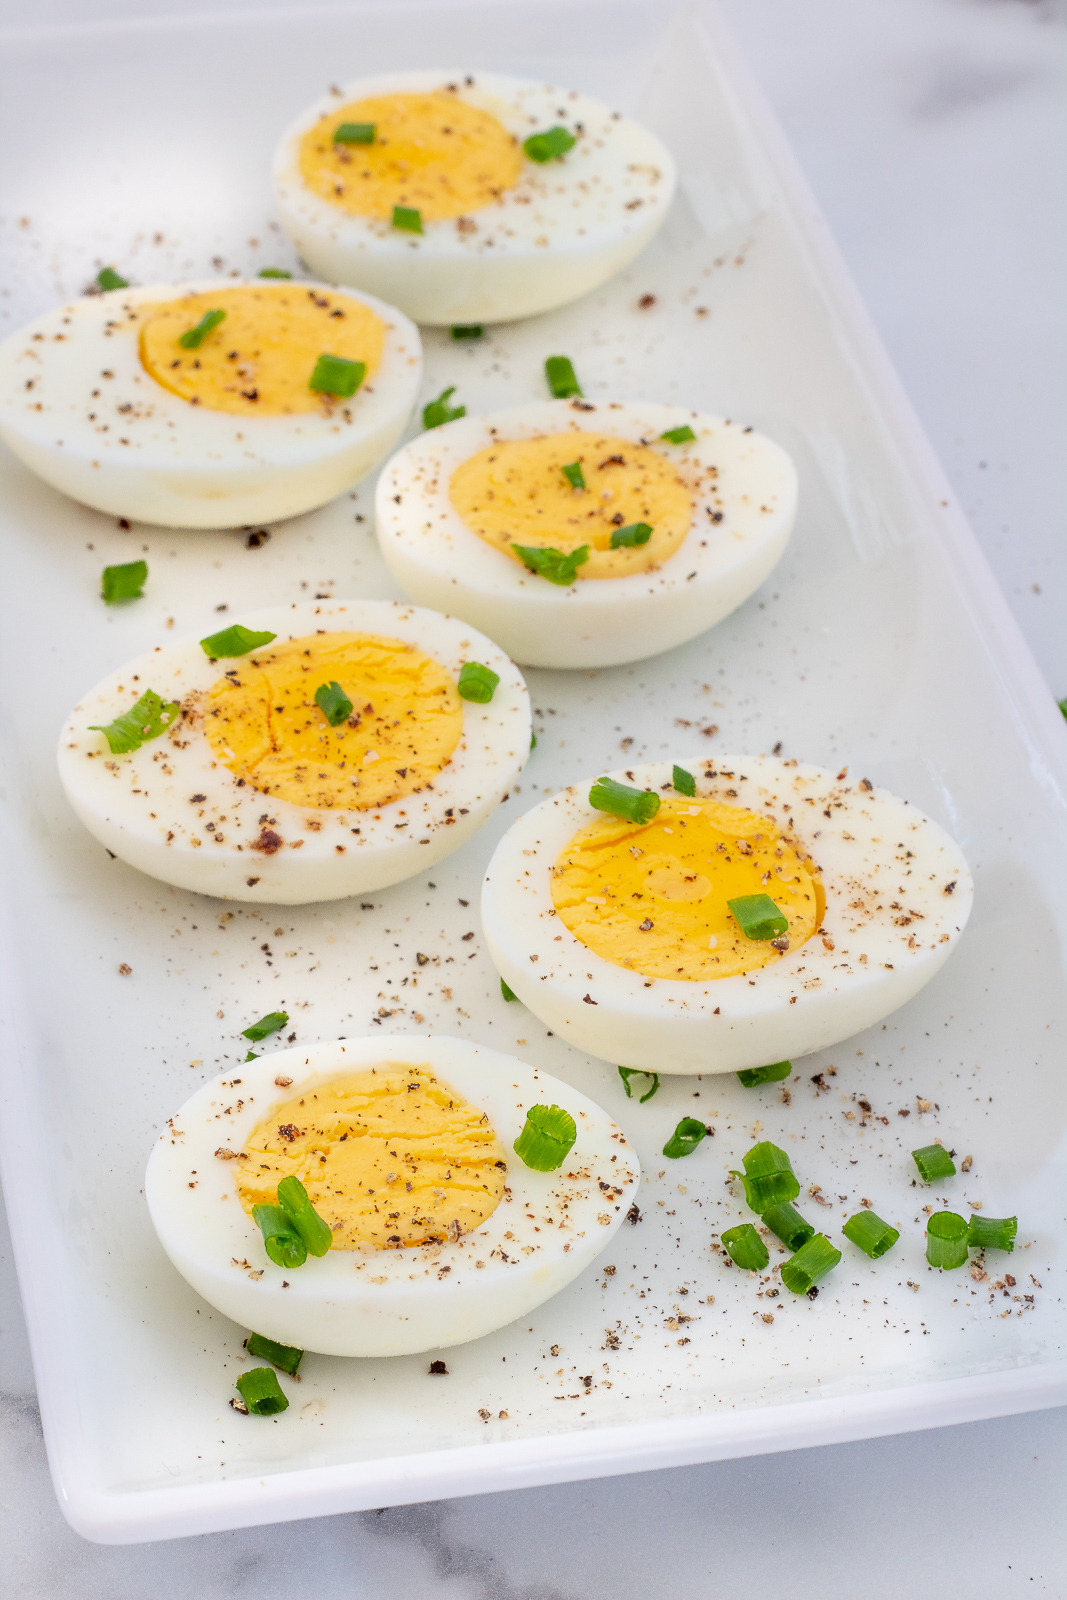 How to make perfect hard boiled eggs the easy way